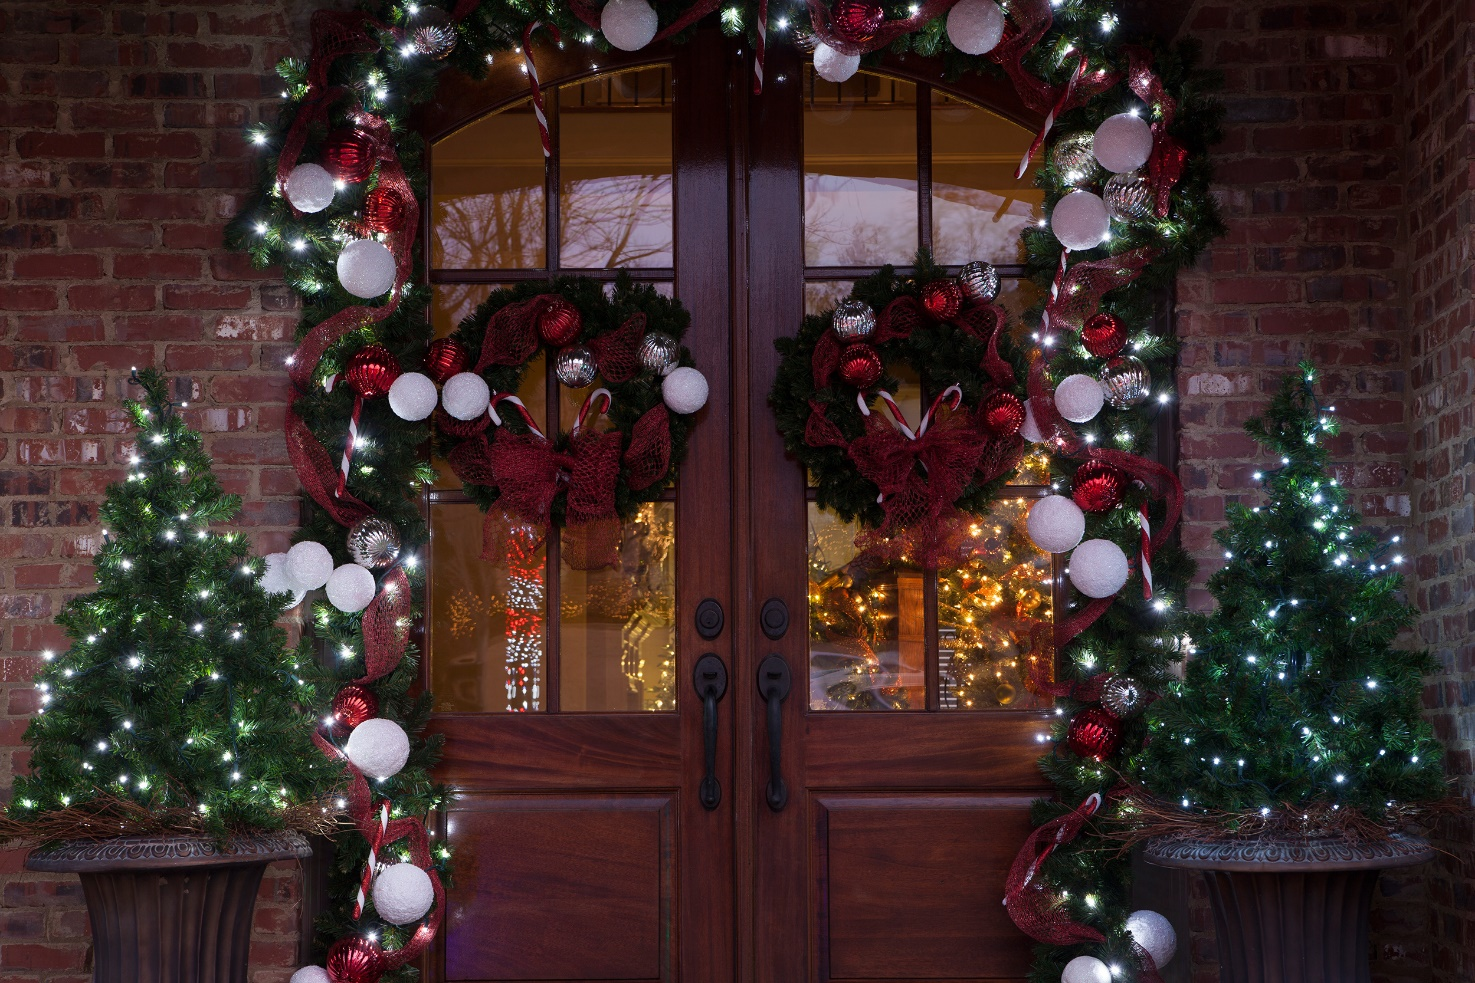 Light ways to decorate your front door for Christmas